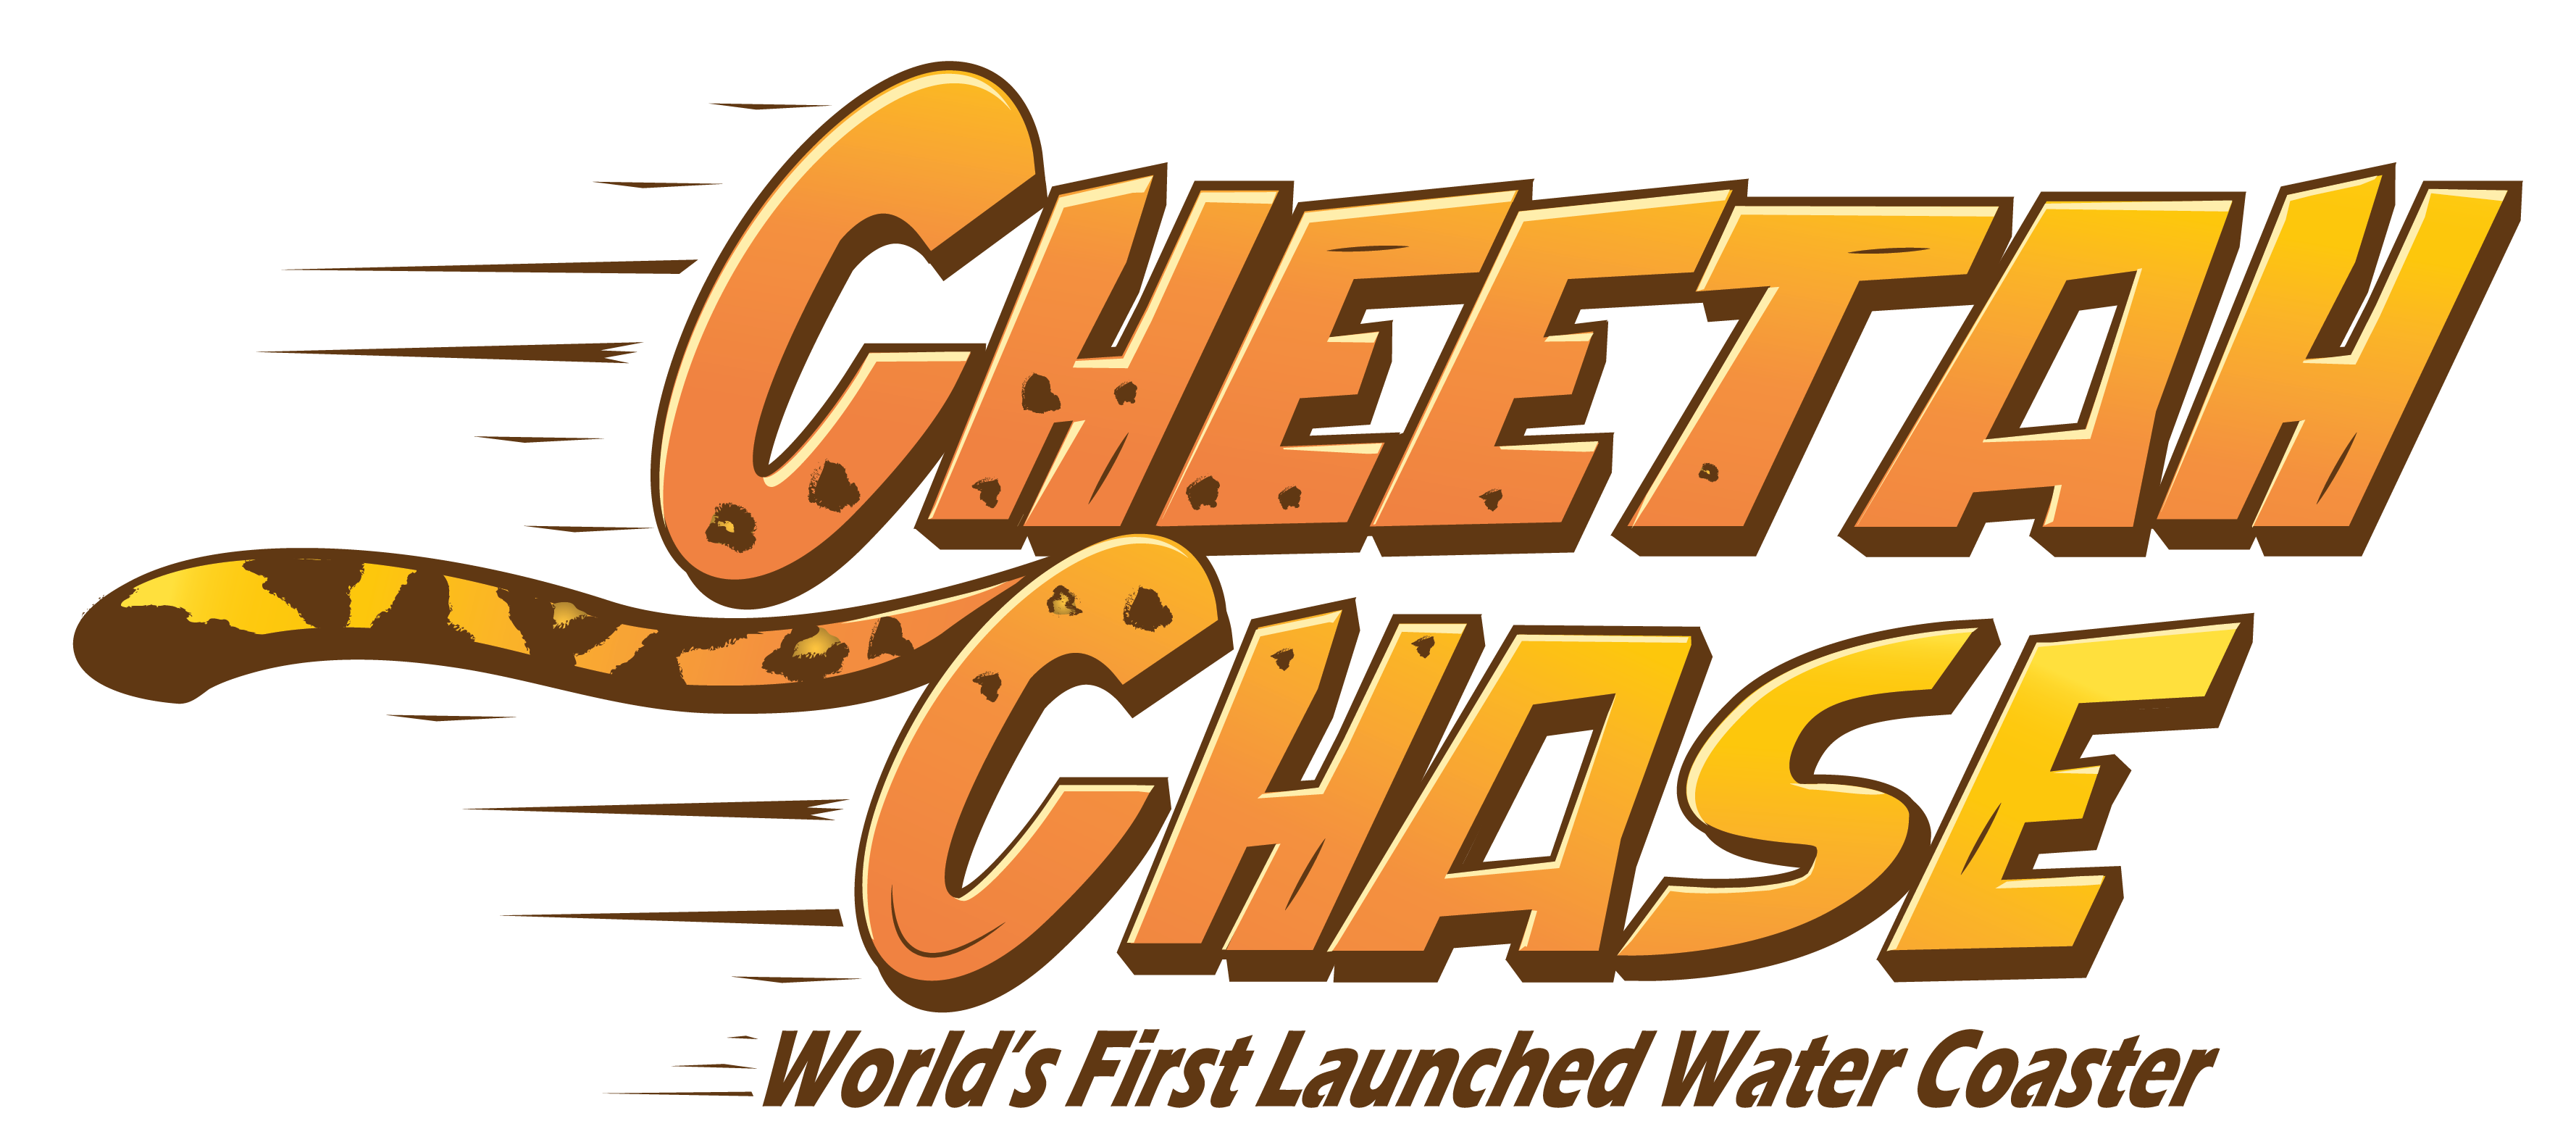 Cheetah Chase with Tagline.png